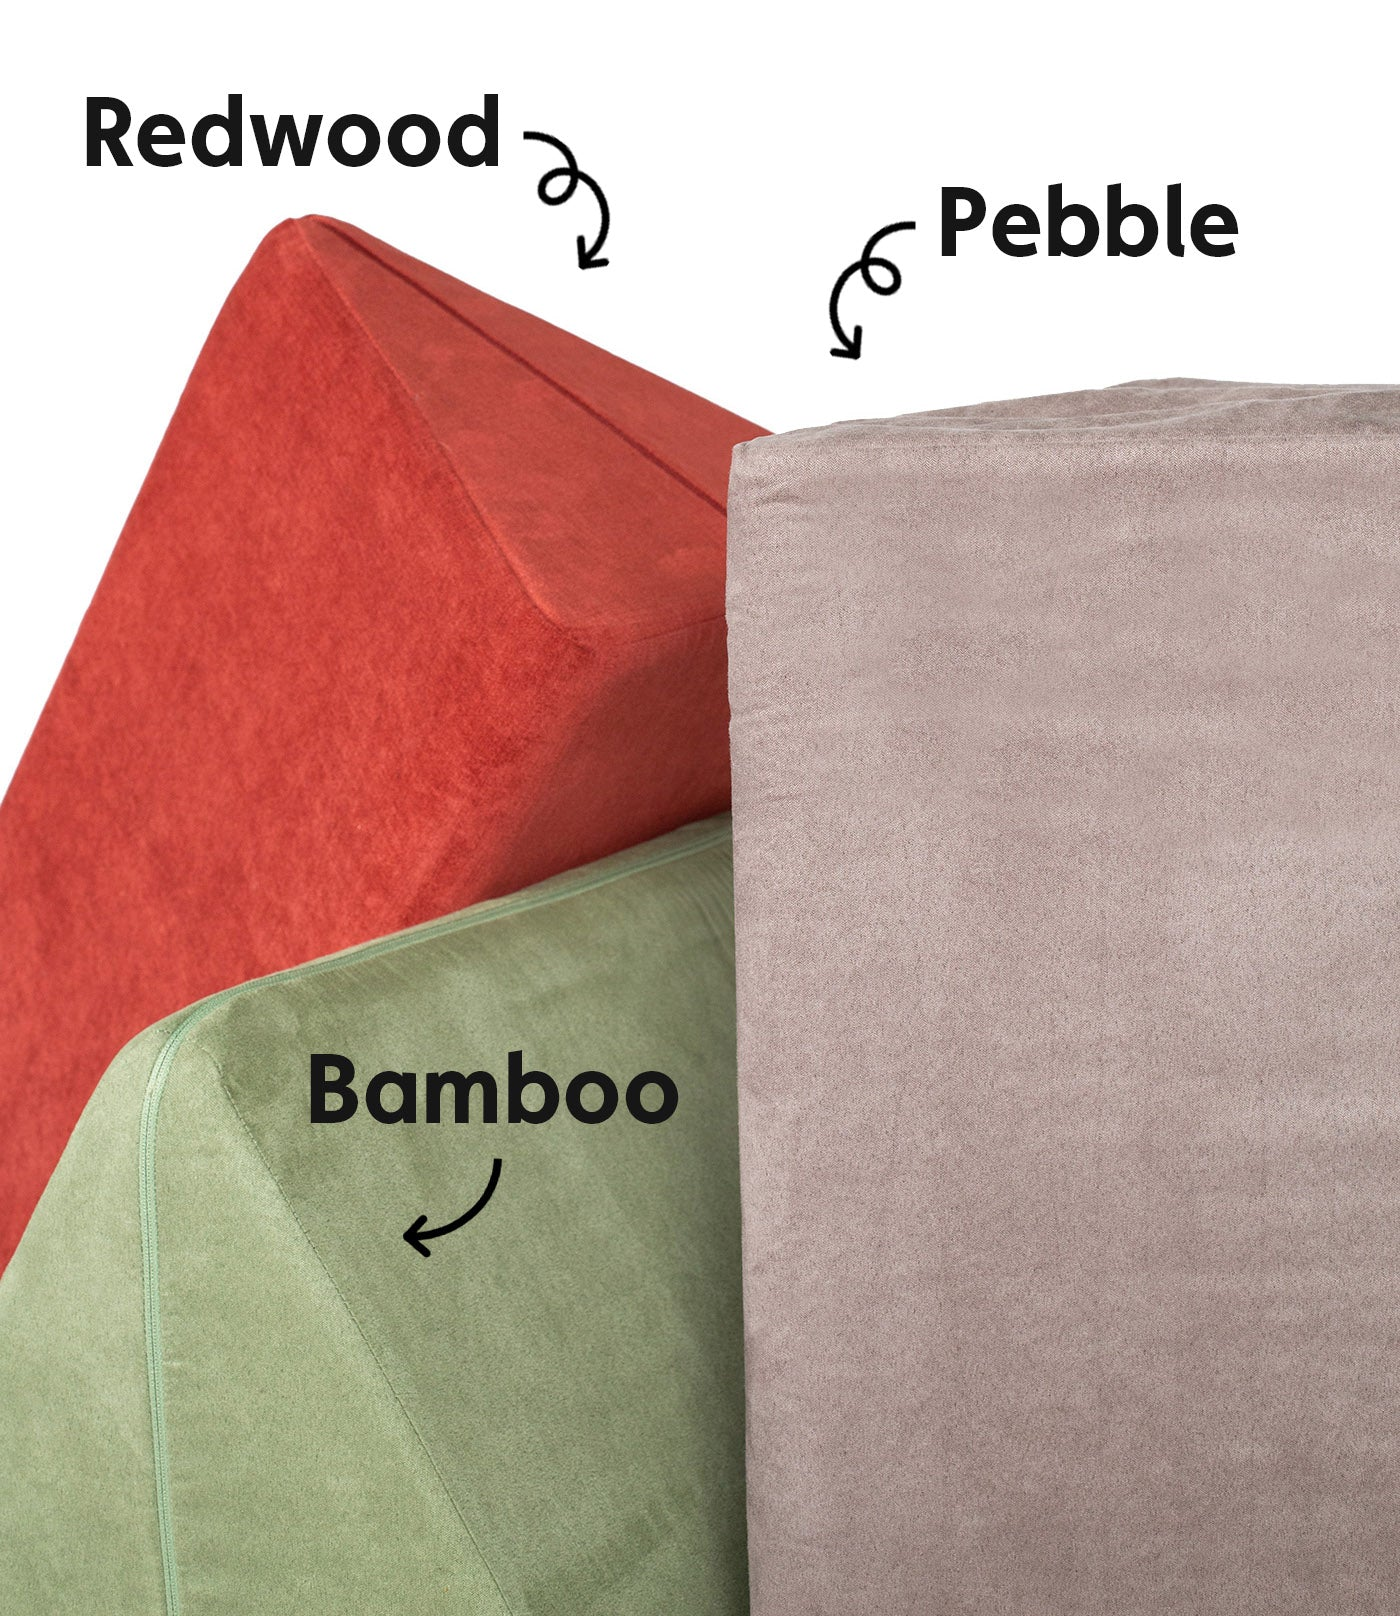 Redwood, Bamboo, and Pebble pillows artfully arranged, labeled with names and arrows